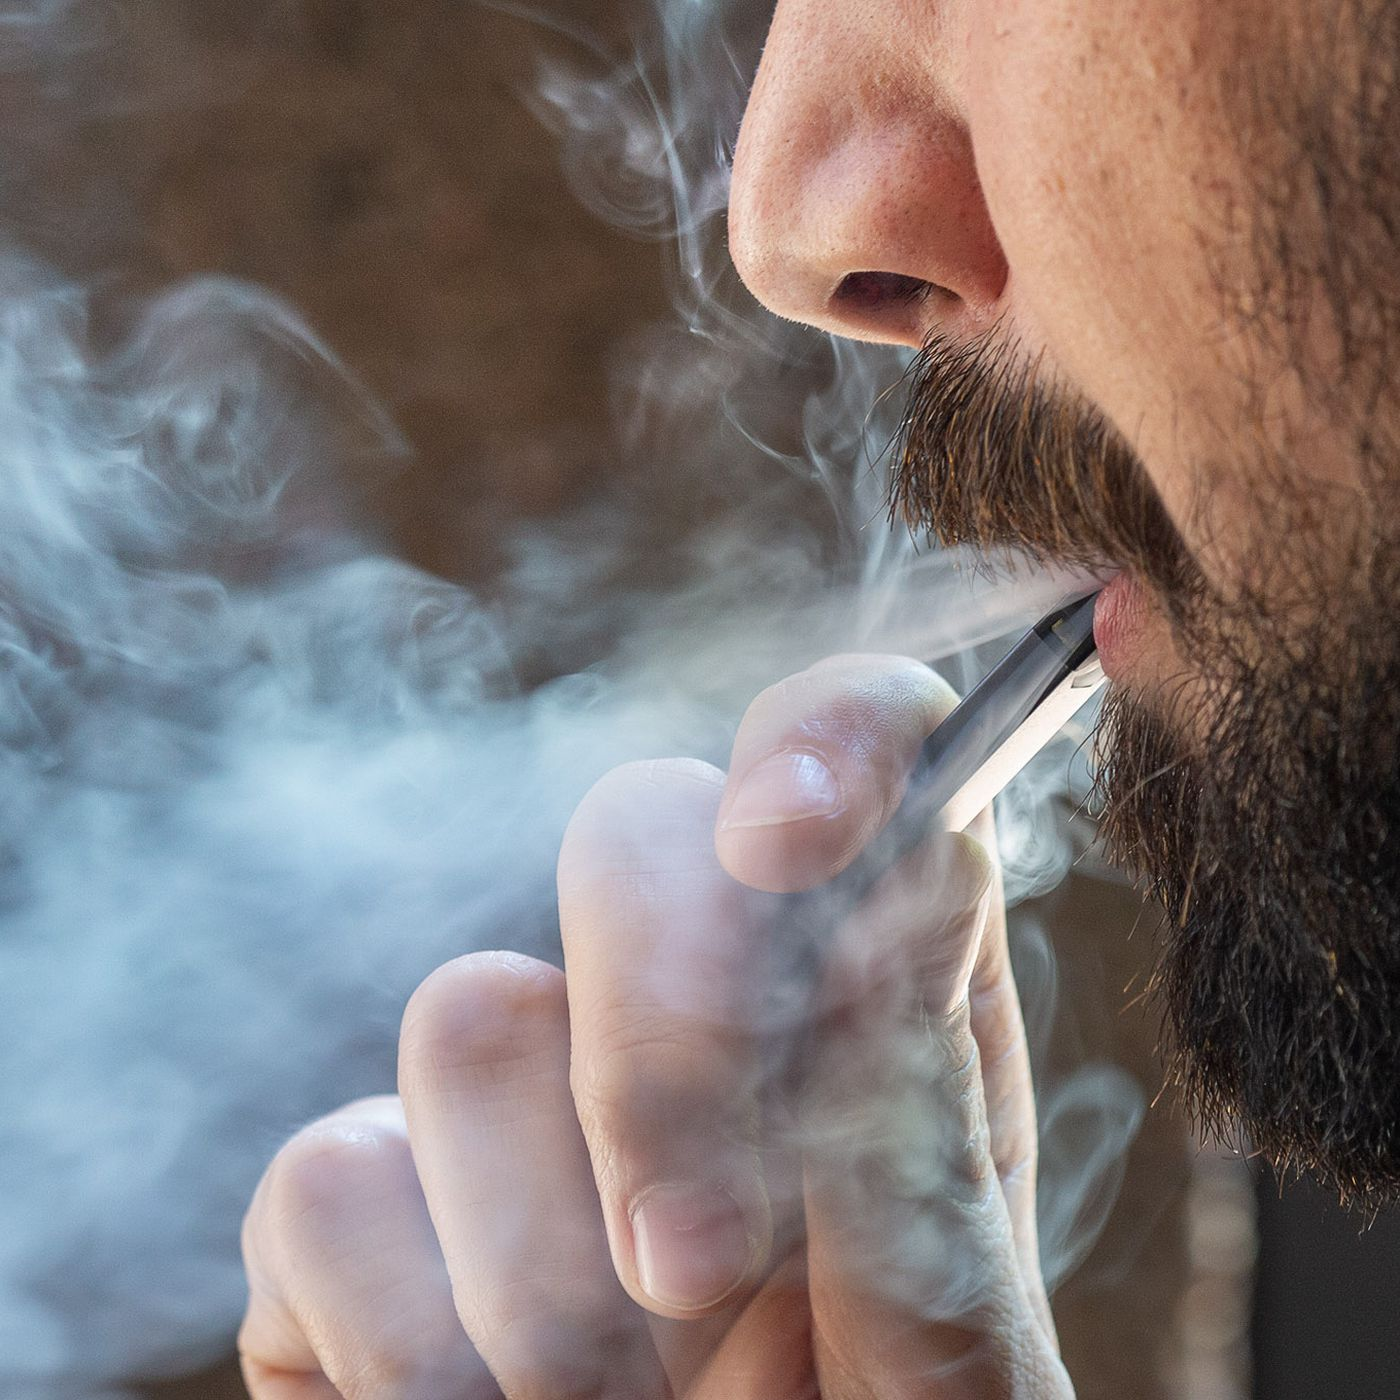 Juul plans to release lower-nicotine vape juice starting in